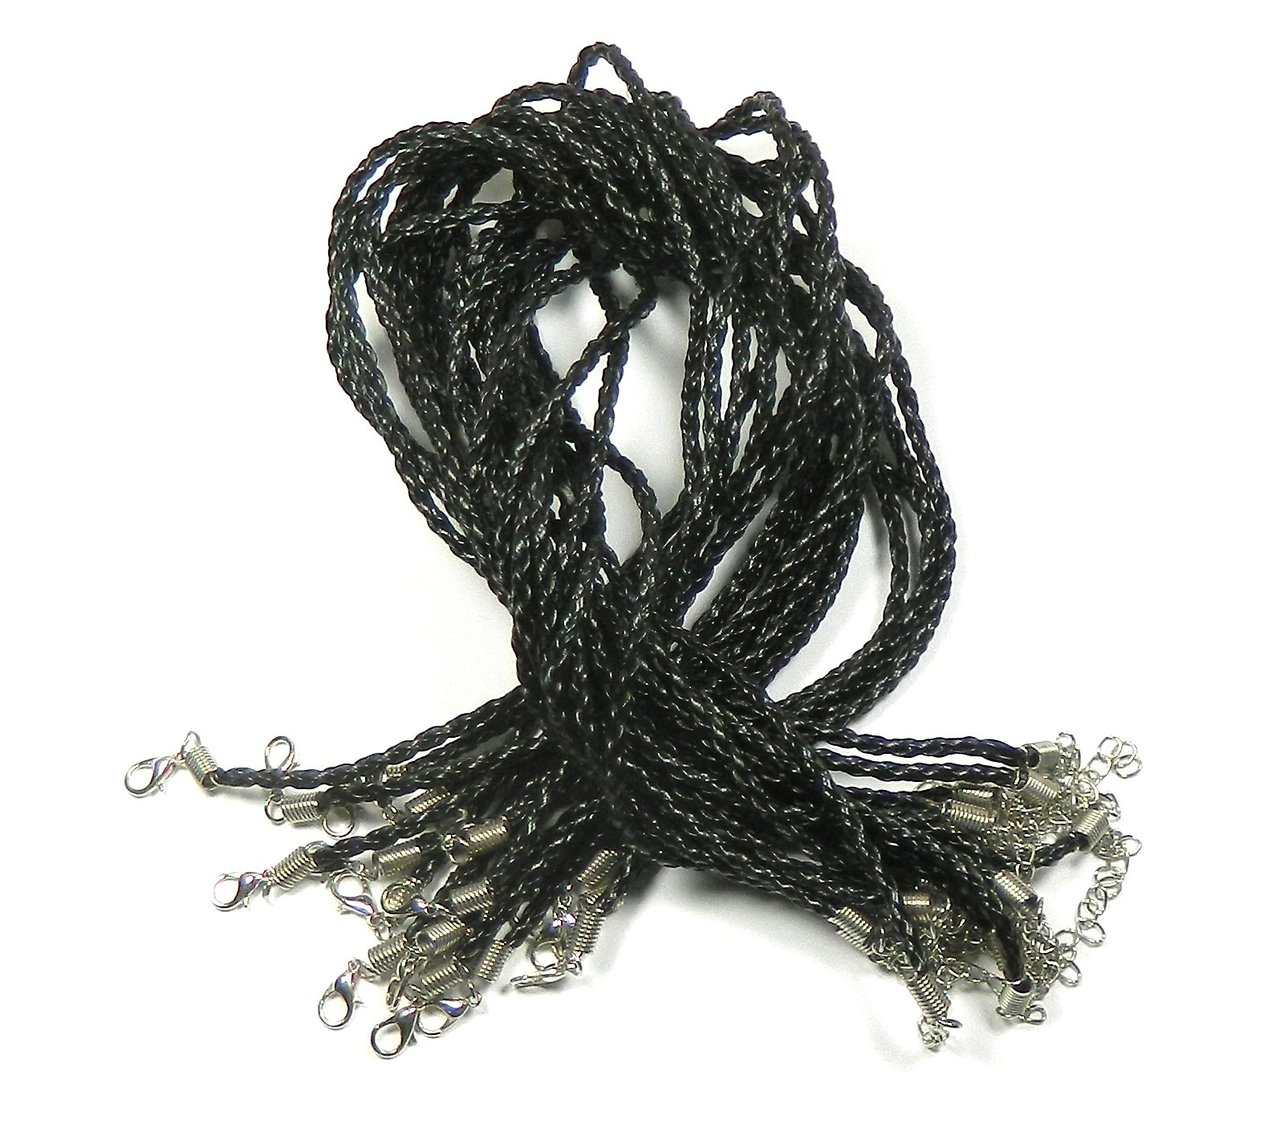 20 Imitation 3mm Leather Cord Necklaces Black Braided 17' Lobster Clasp by